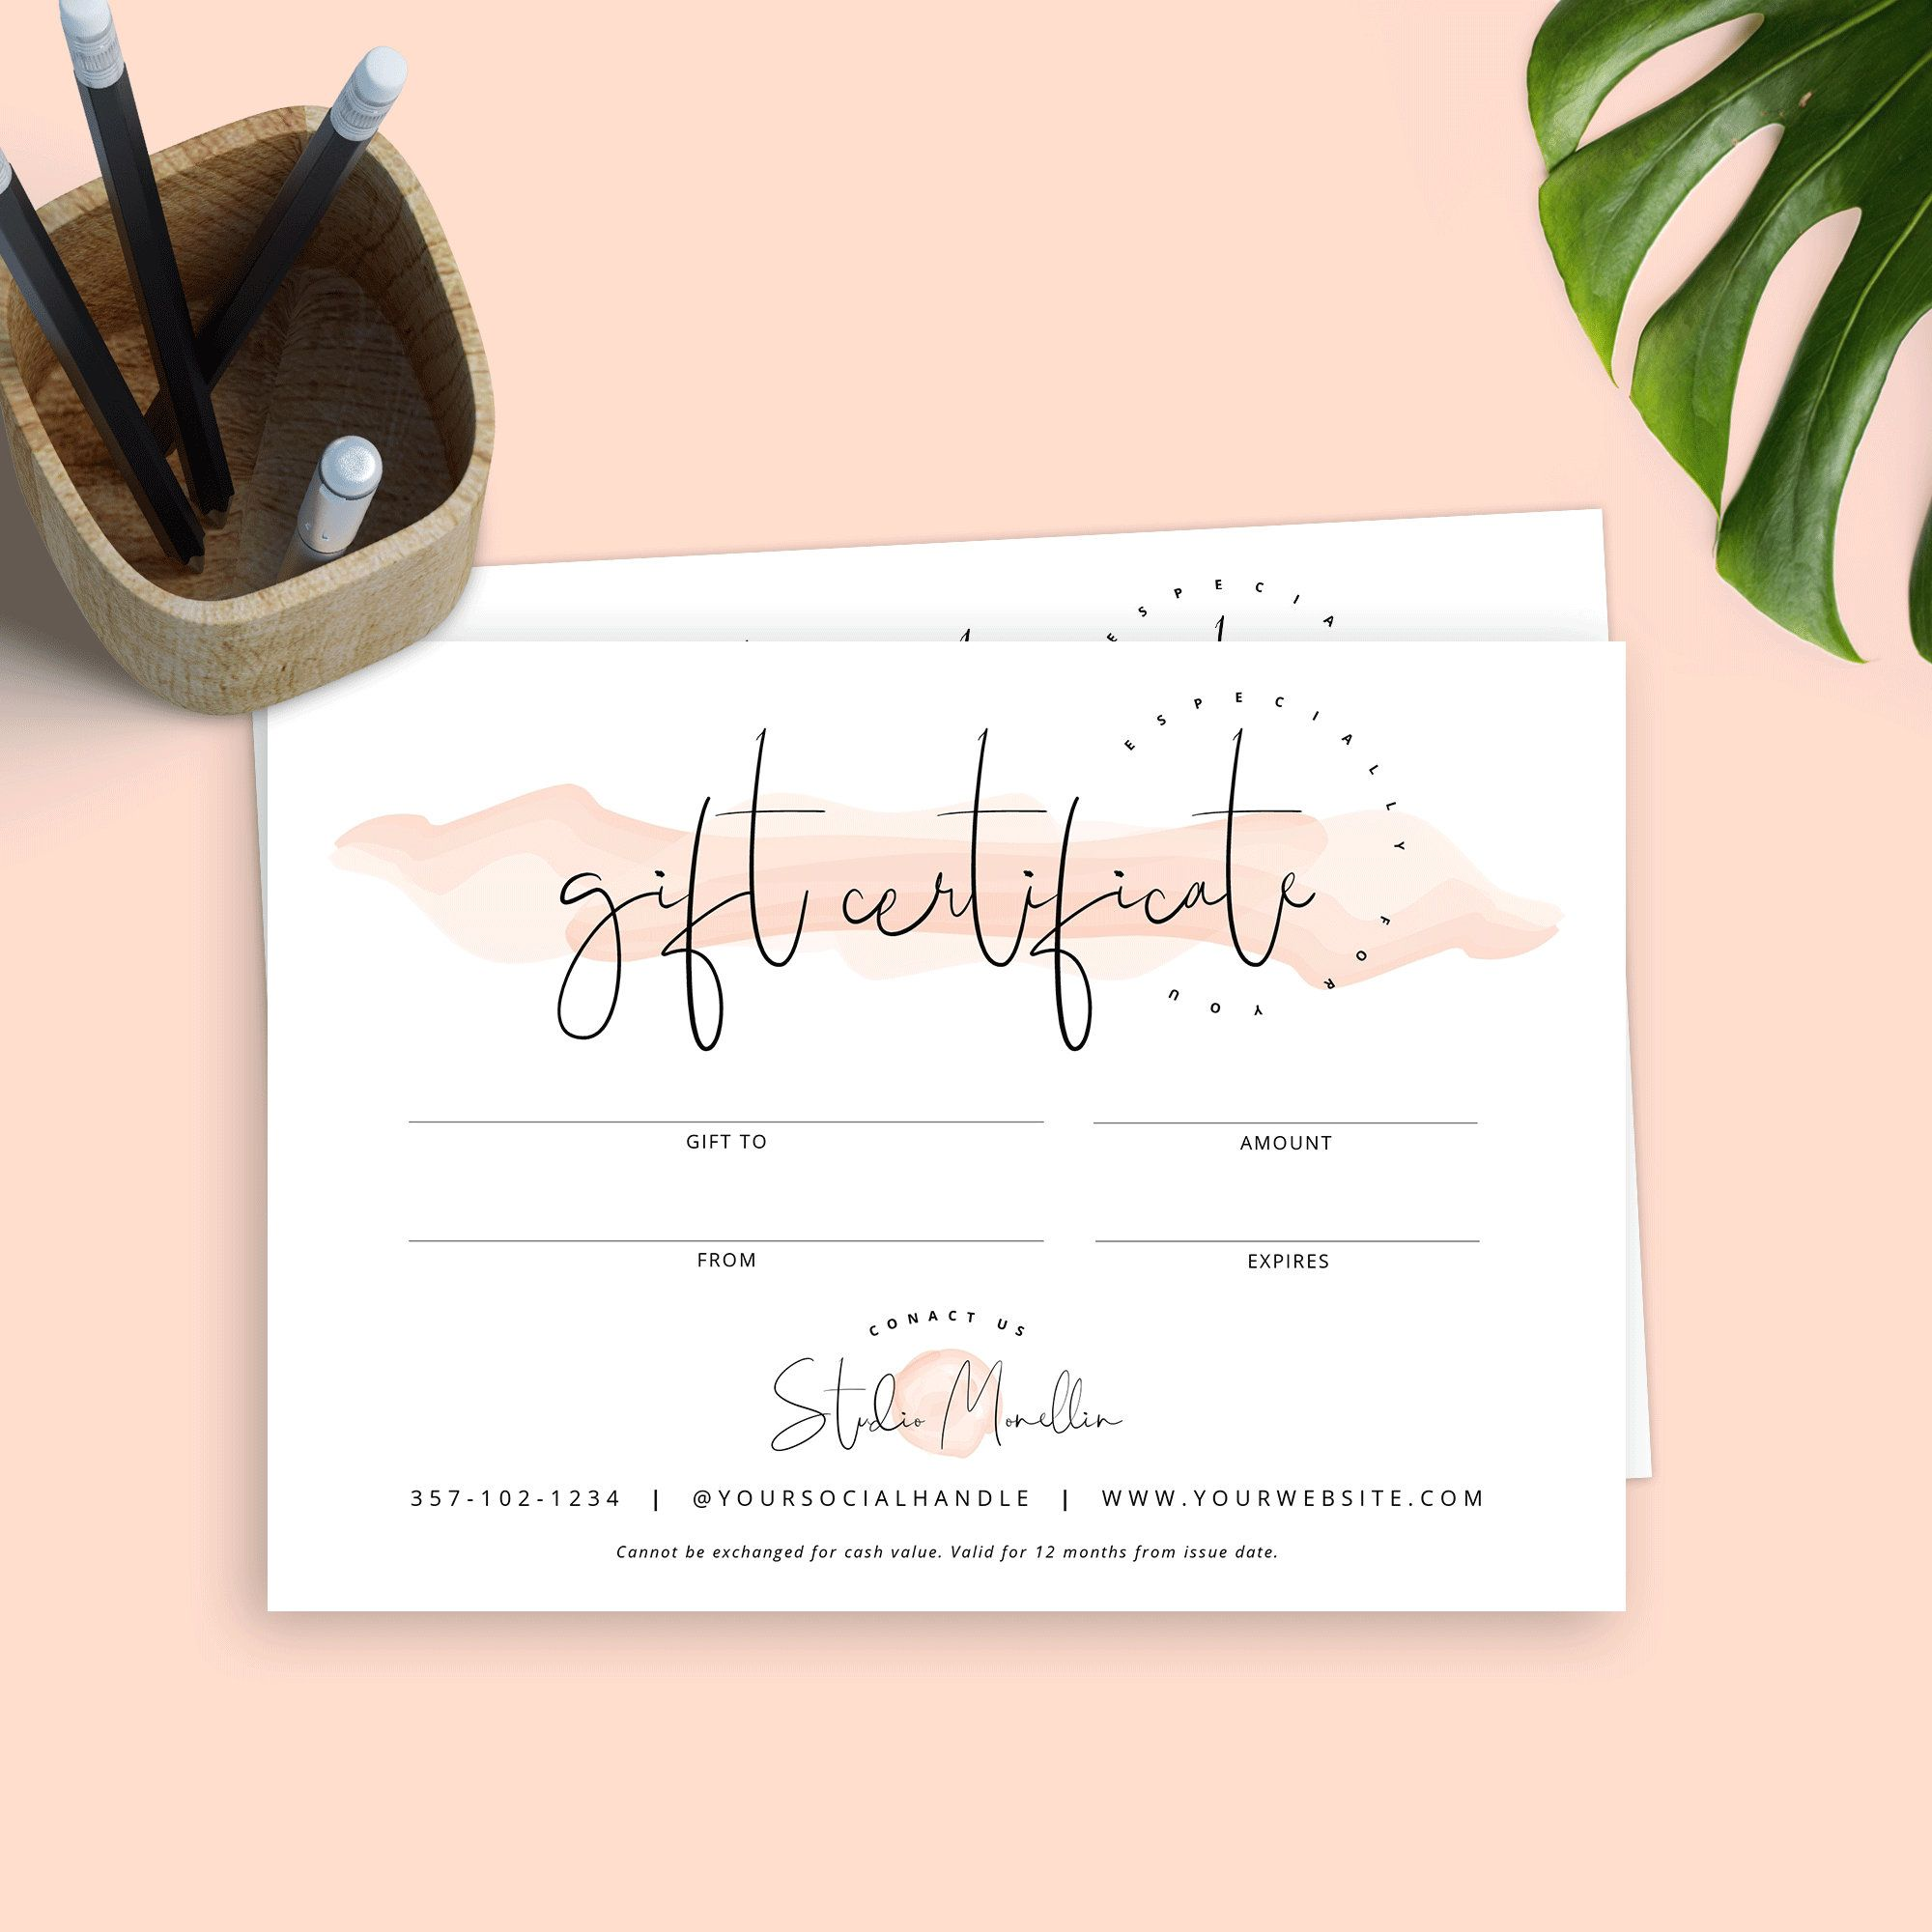 Elegant Gift Certificate Template Mother S Day Gift Etsy Printable Gift Cards Gift Voucher Design Gift Certificate Template